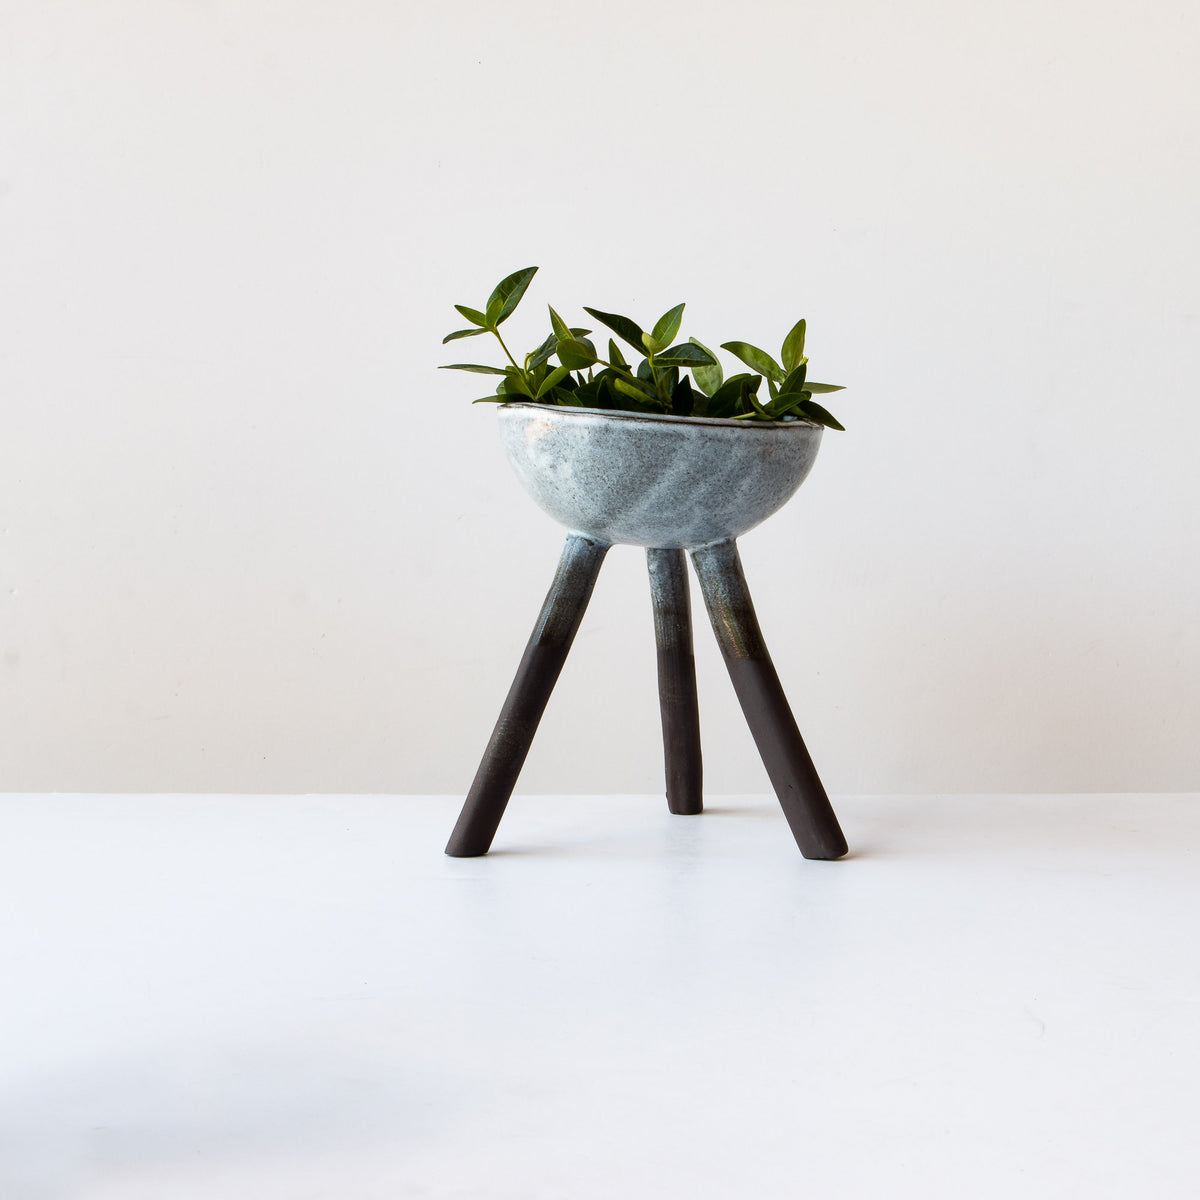 Handcrafted Ceramic Planter With 3 Legs - Grey & White - Sold by Chic & Basta